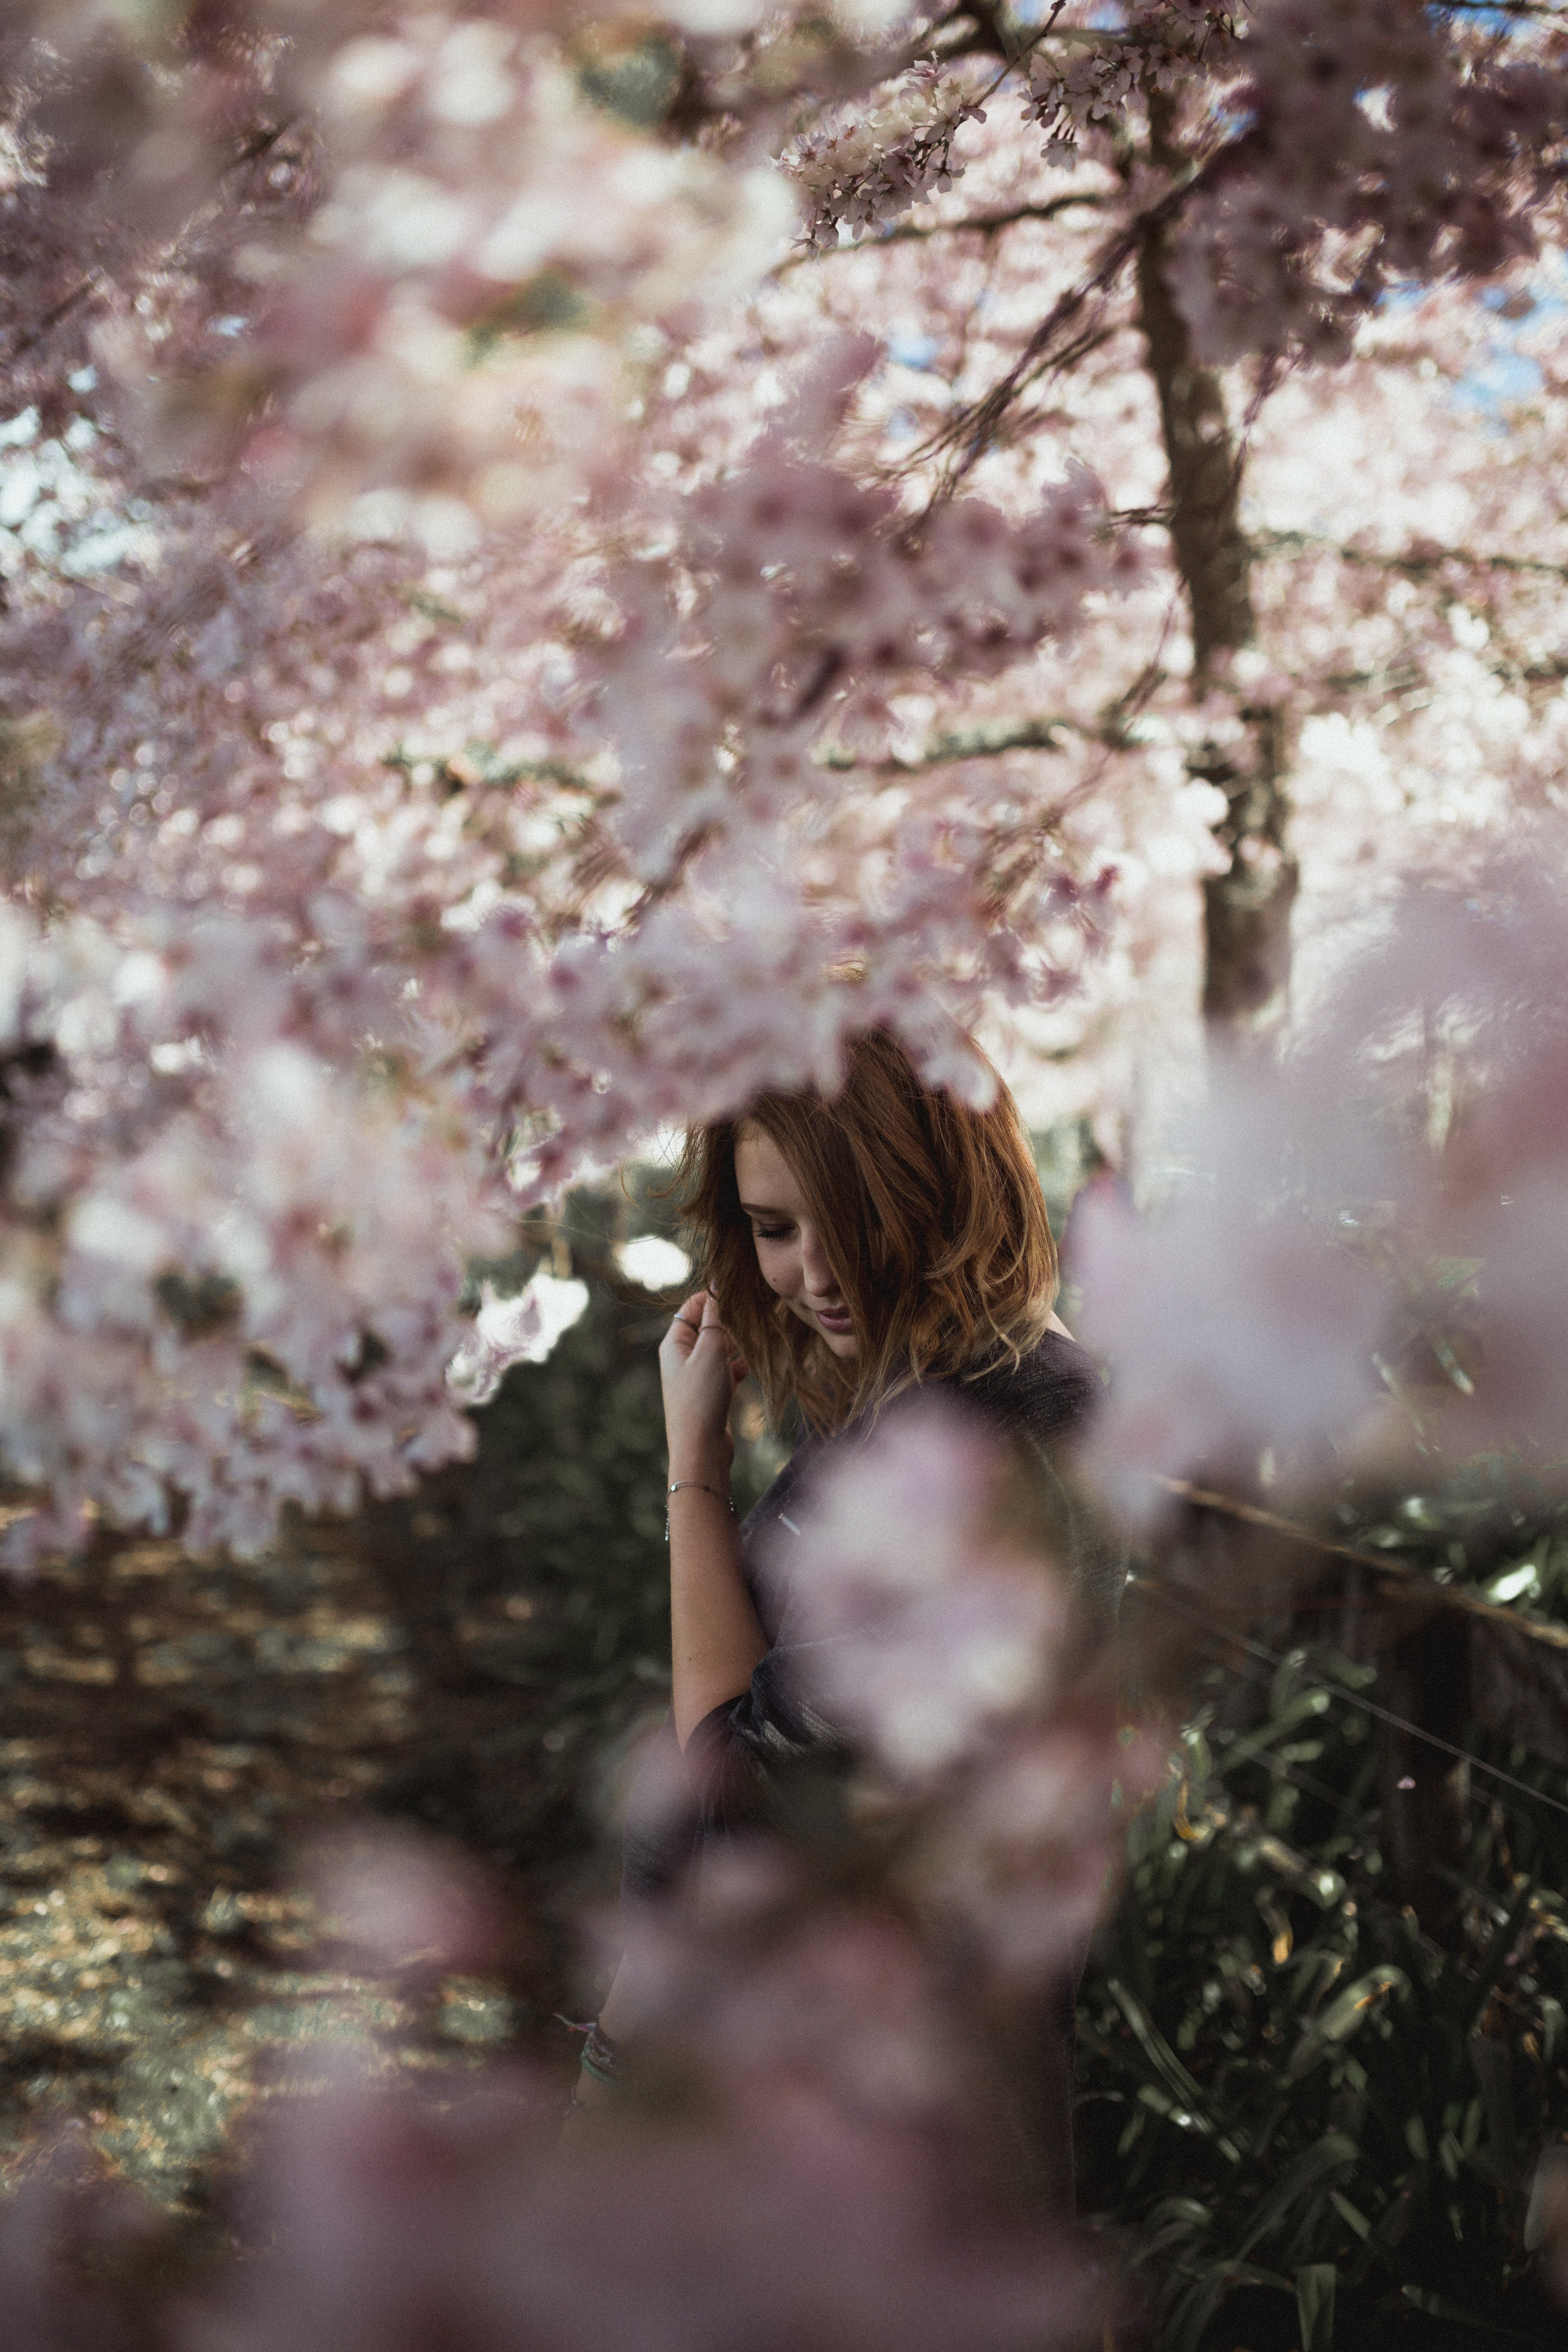 woman near cherry blossom tree